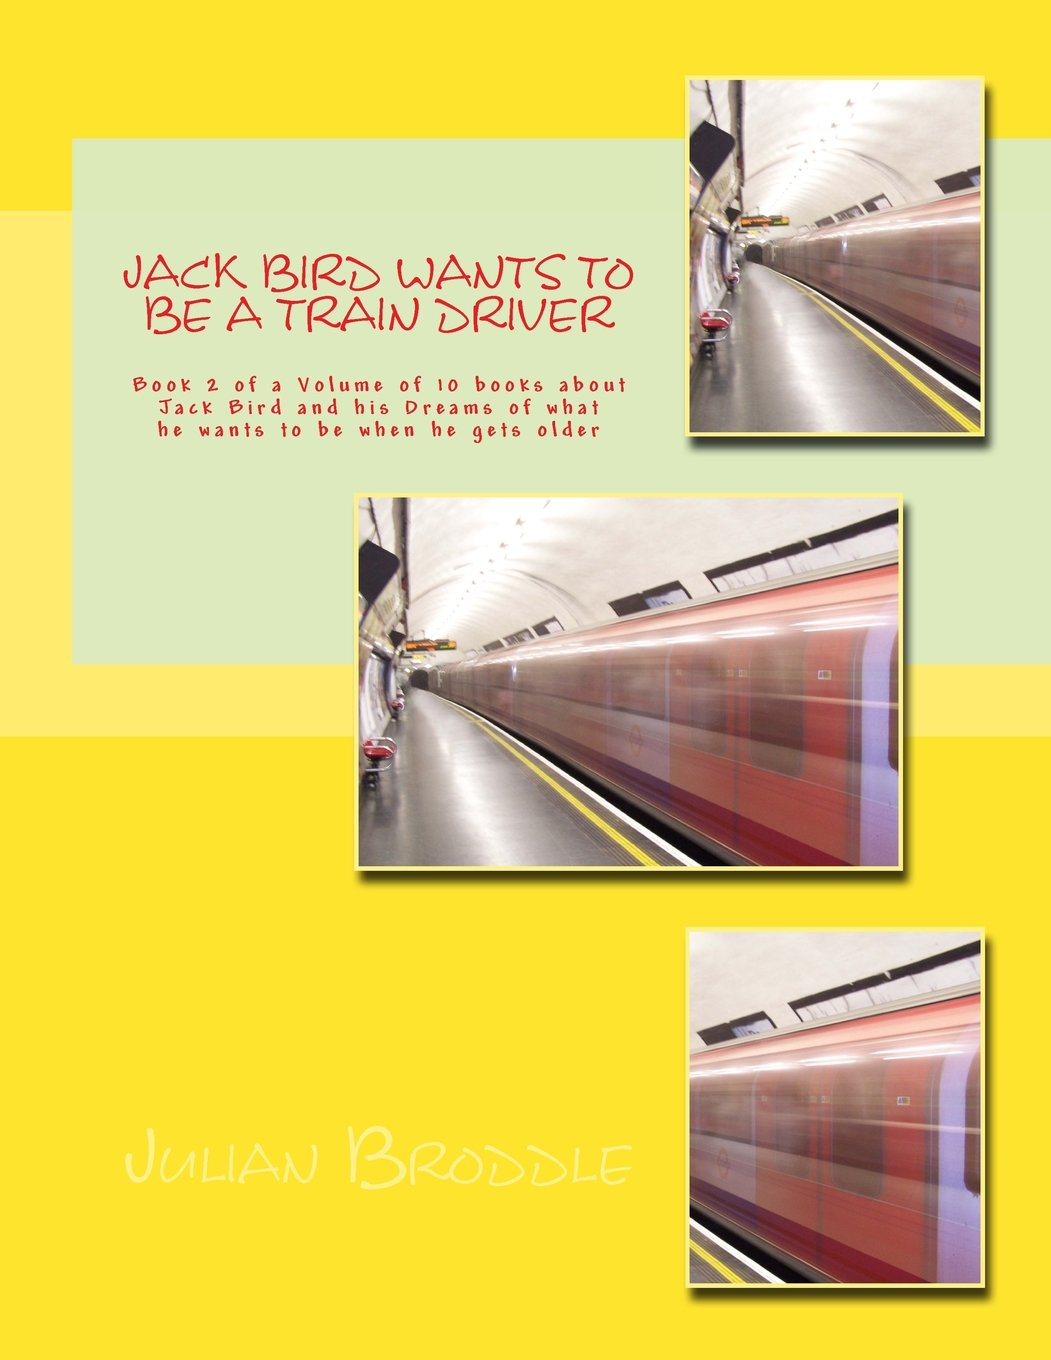 Jack Bird Wants To Be A Train Driver: Book 2 of a Volume of